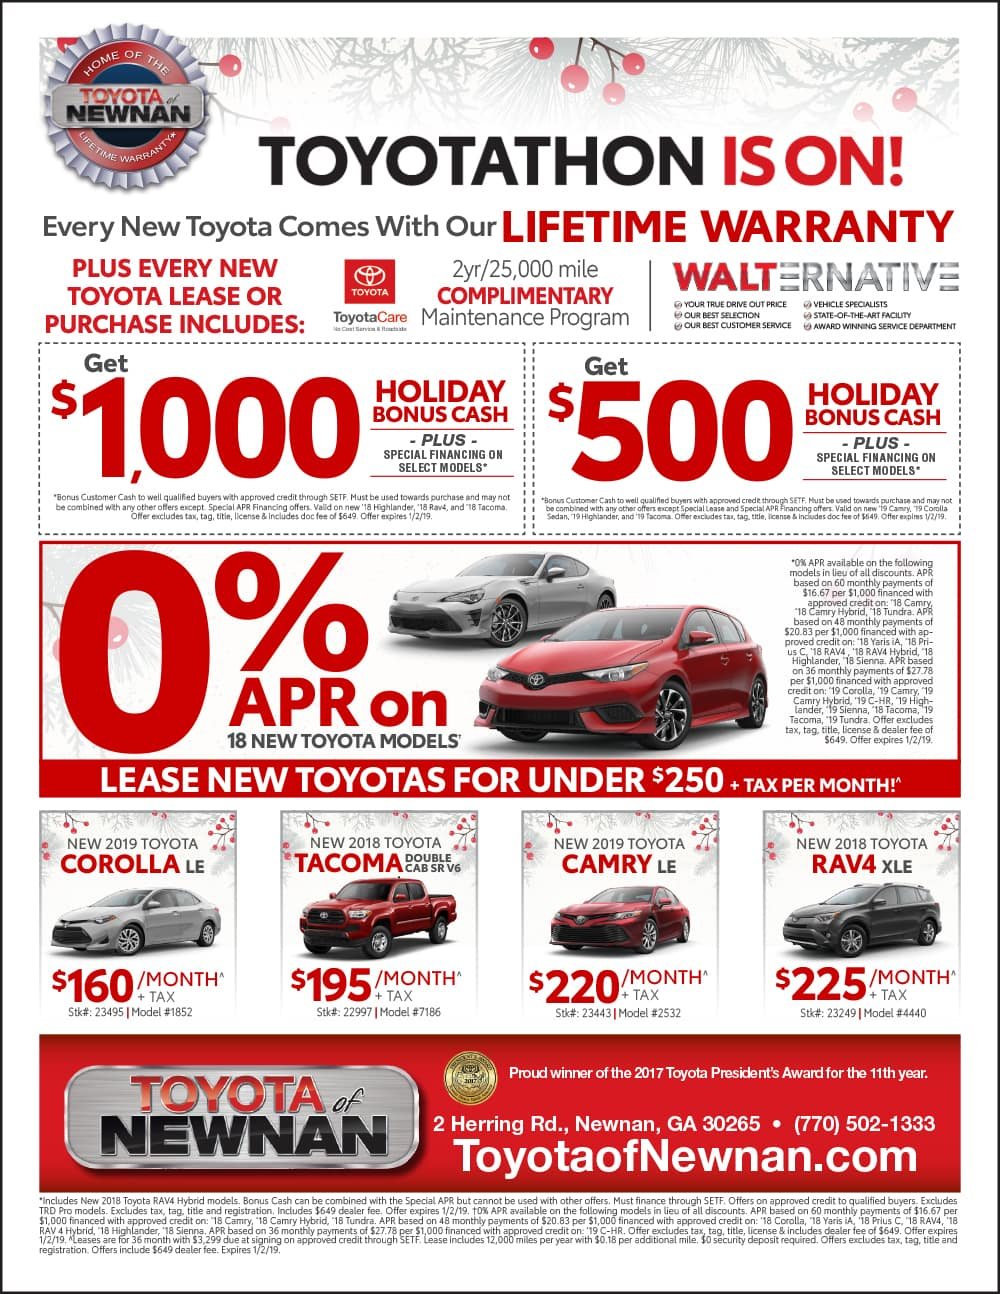 Why Buy now at Toyota of Newnan during Toyotathon!